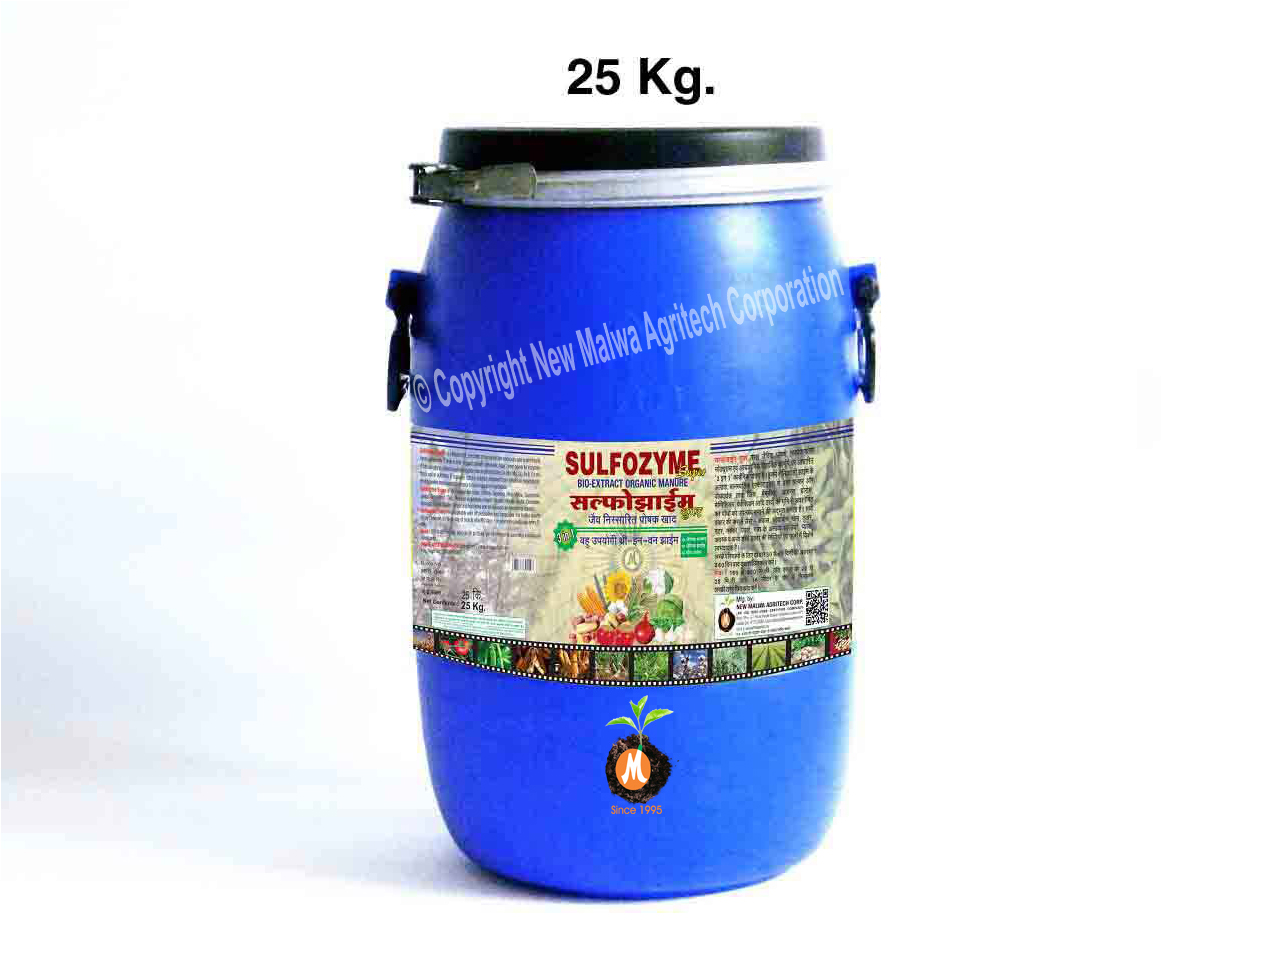 Zyme Granules in 25 kg. Drum for plants, crops and vegetables